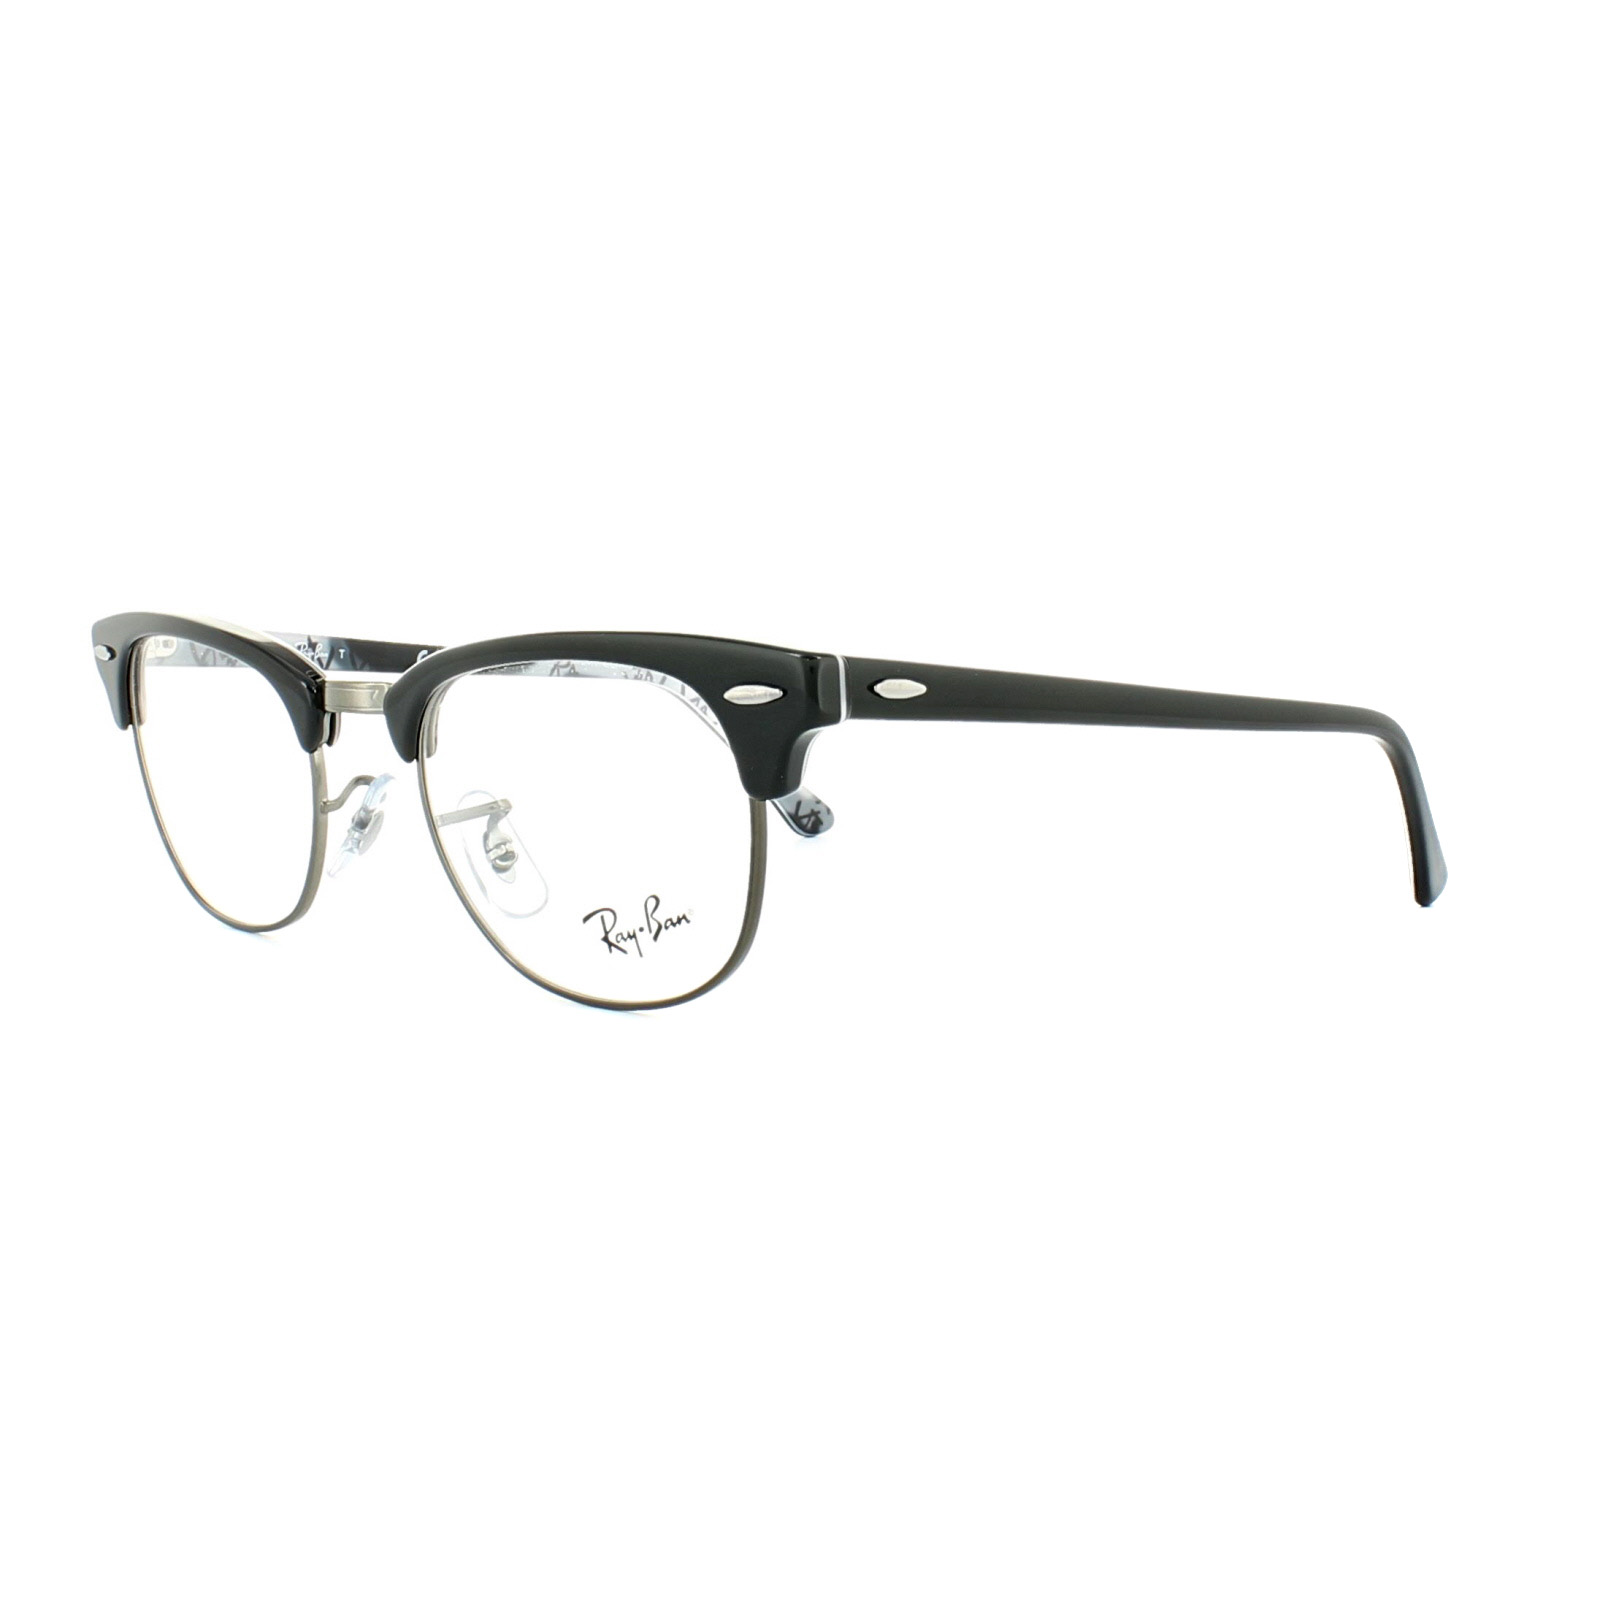 0d3610cc21 Sentinel Ray-Ban Glasses Frames 5154 Clubmaster 5649 Black Texture  Camouflage 49mm